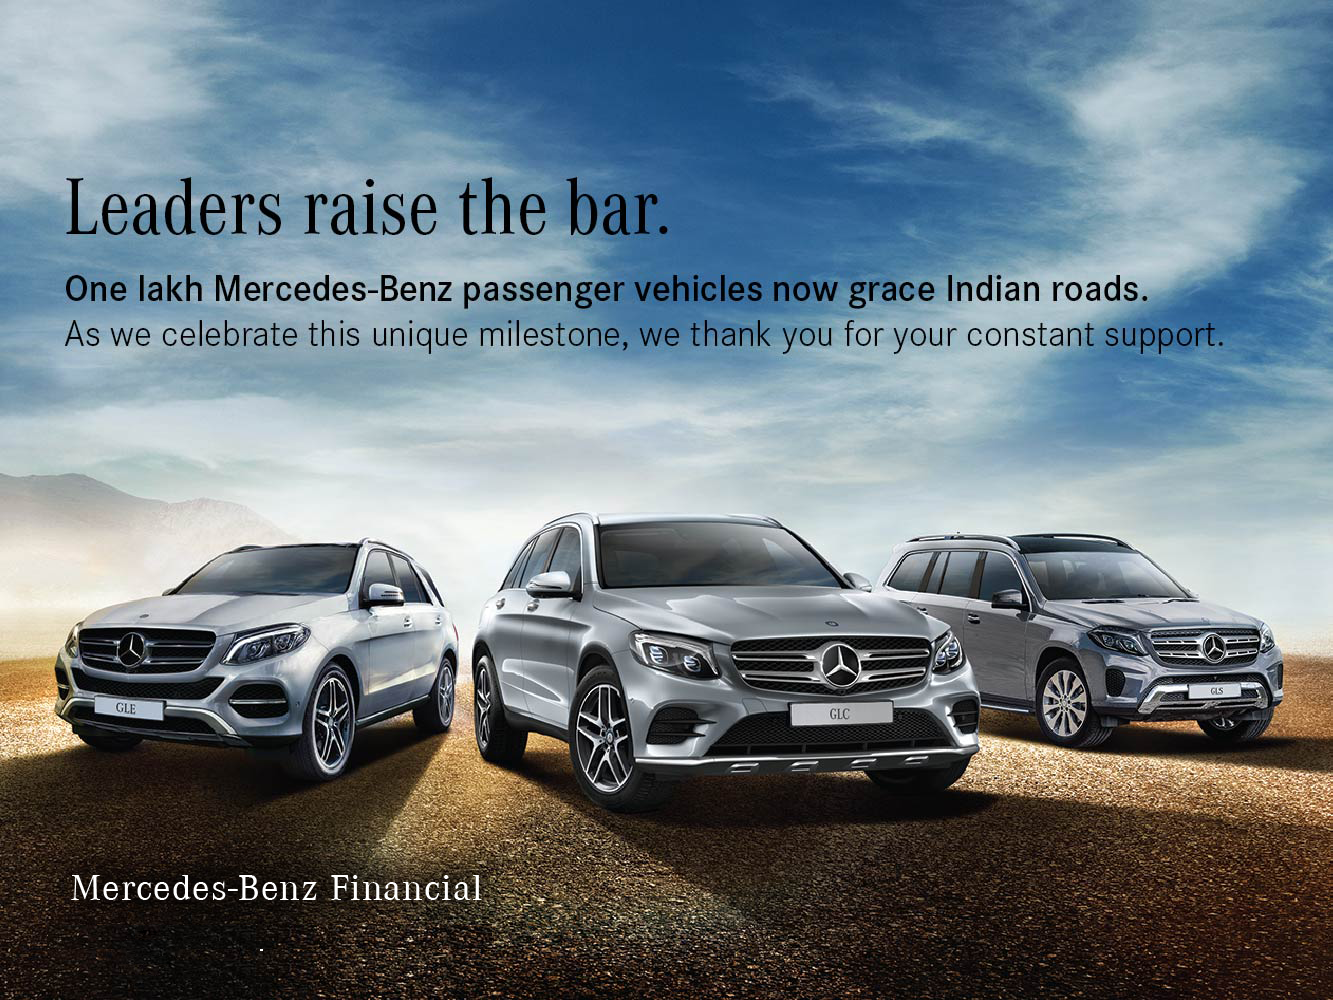 Take Home Your Star At The Best Price Visit Trinity Motors Or Call On 9075030300 To Know About The Special Offers From 1 Mercedes Benz Passenger Vehicle Benz